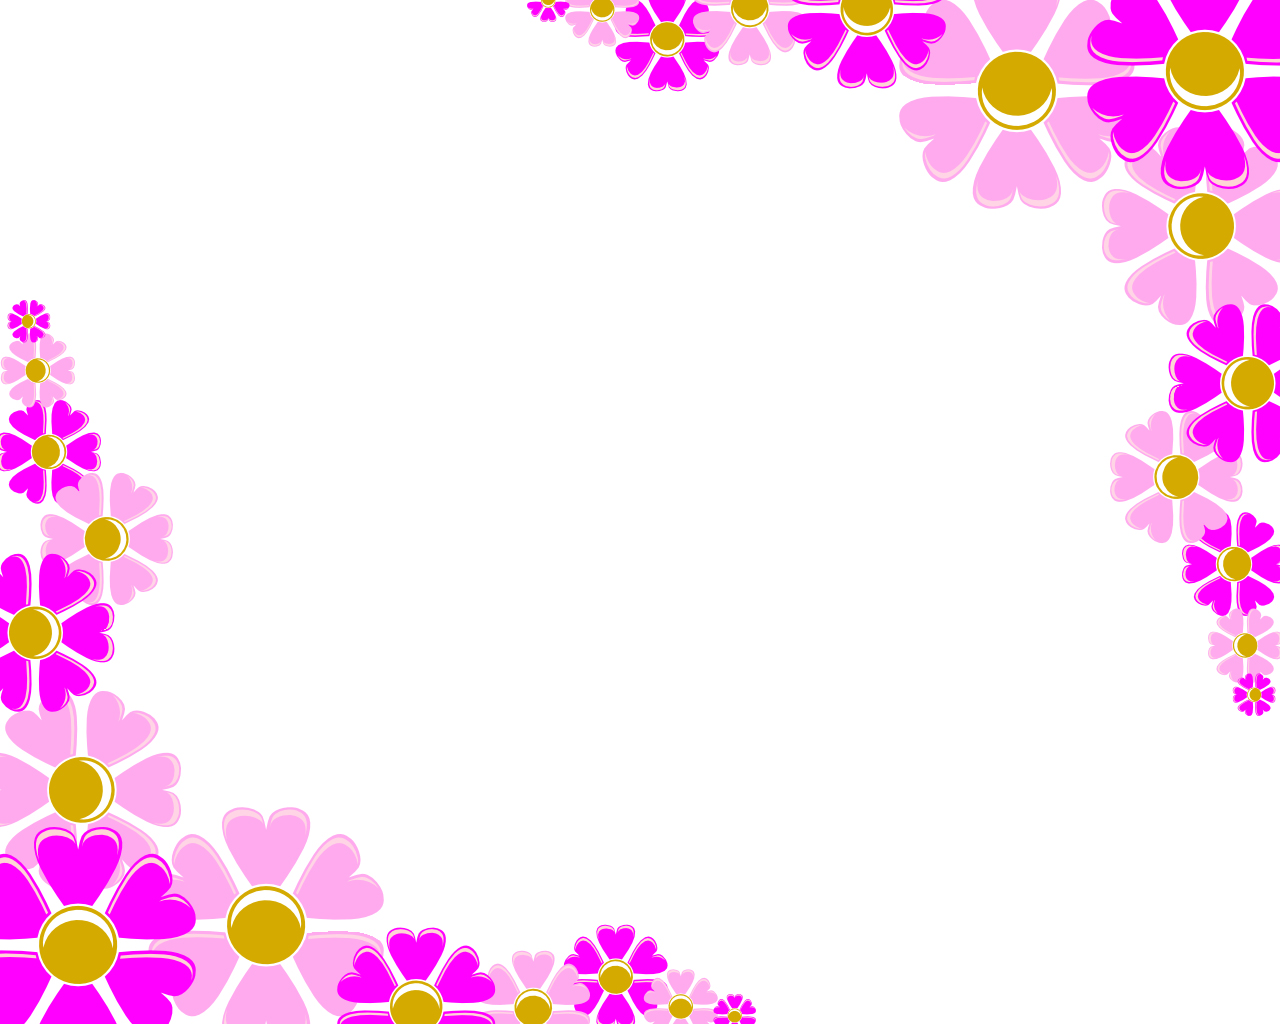 Decoration clipart powerpoint Pink Free Corner Backgrounds Flower